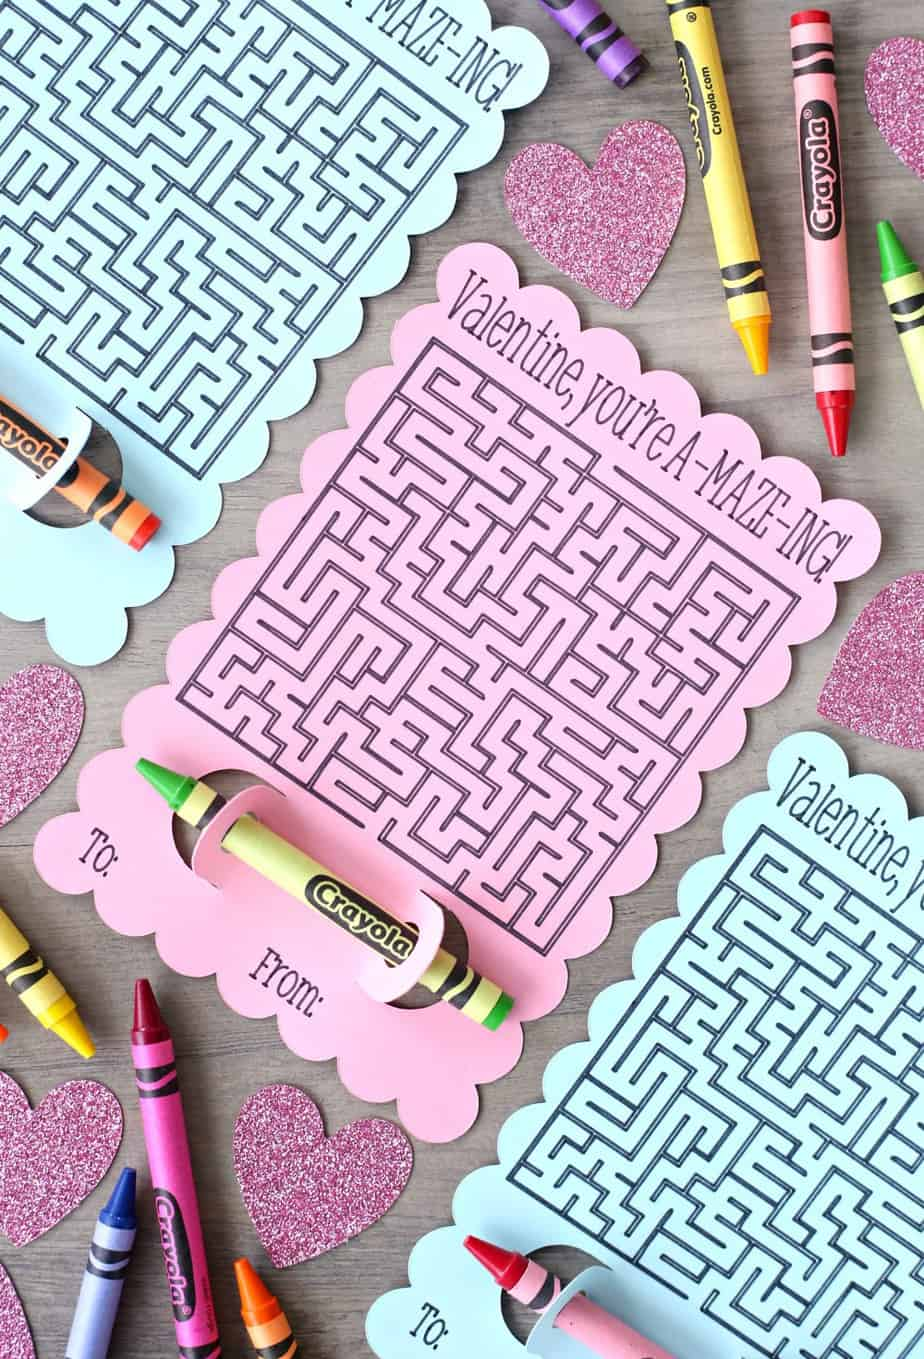 Maze Valentine's Day Cards - an easy non-candy Valentine's Day card to make with your Cricut cutting machine. A fun and easy Valentine! #noncandyvalentine #valentinesdaycard #cricutmade